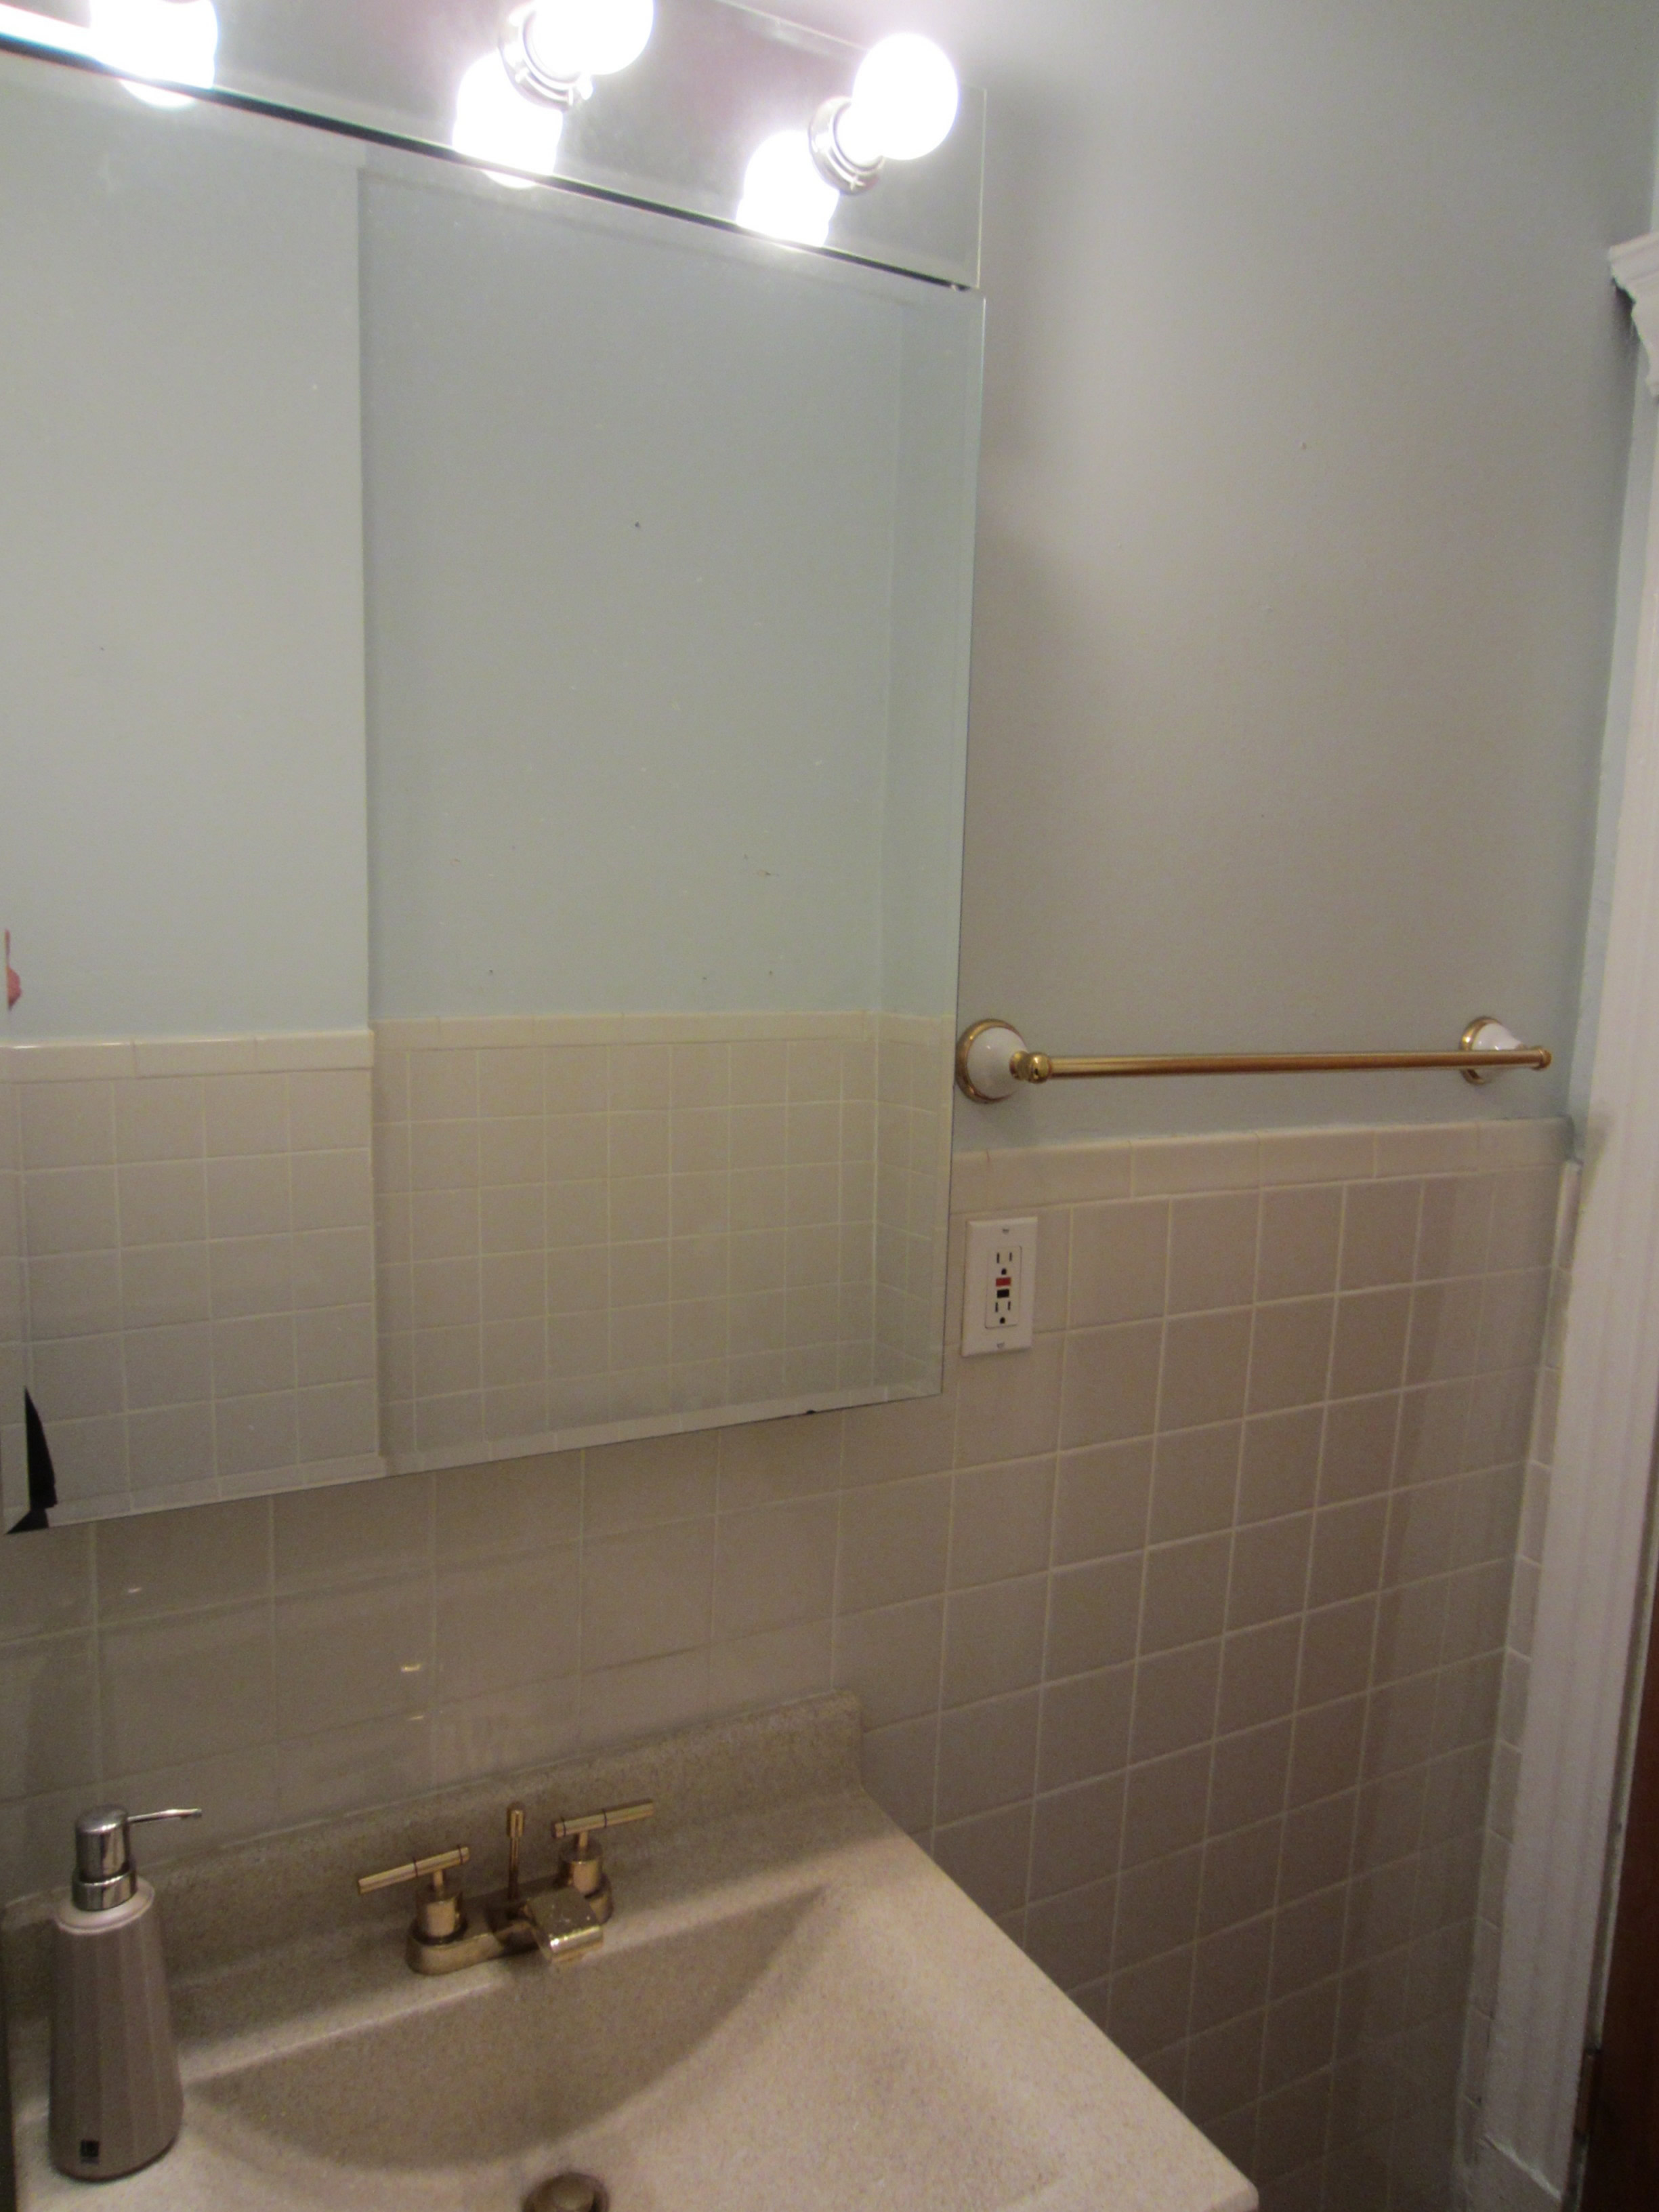 Bathroom Remodeling Boston boston bathroom remodeling contractors ne design build. bath